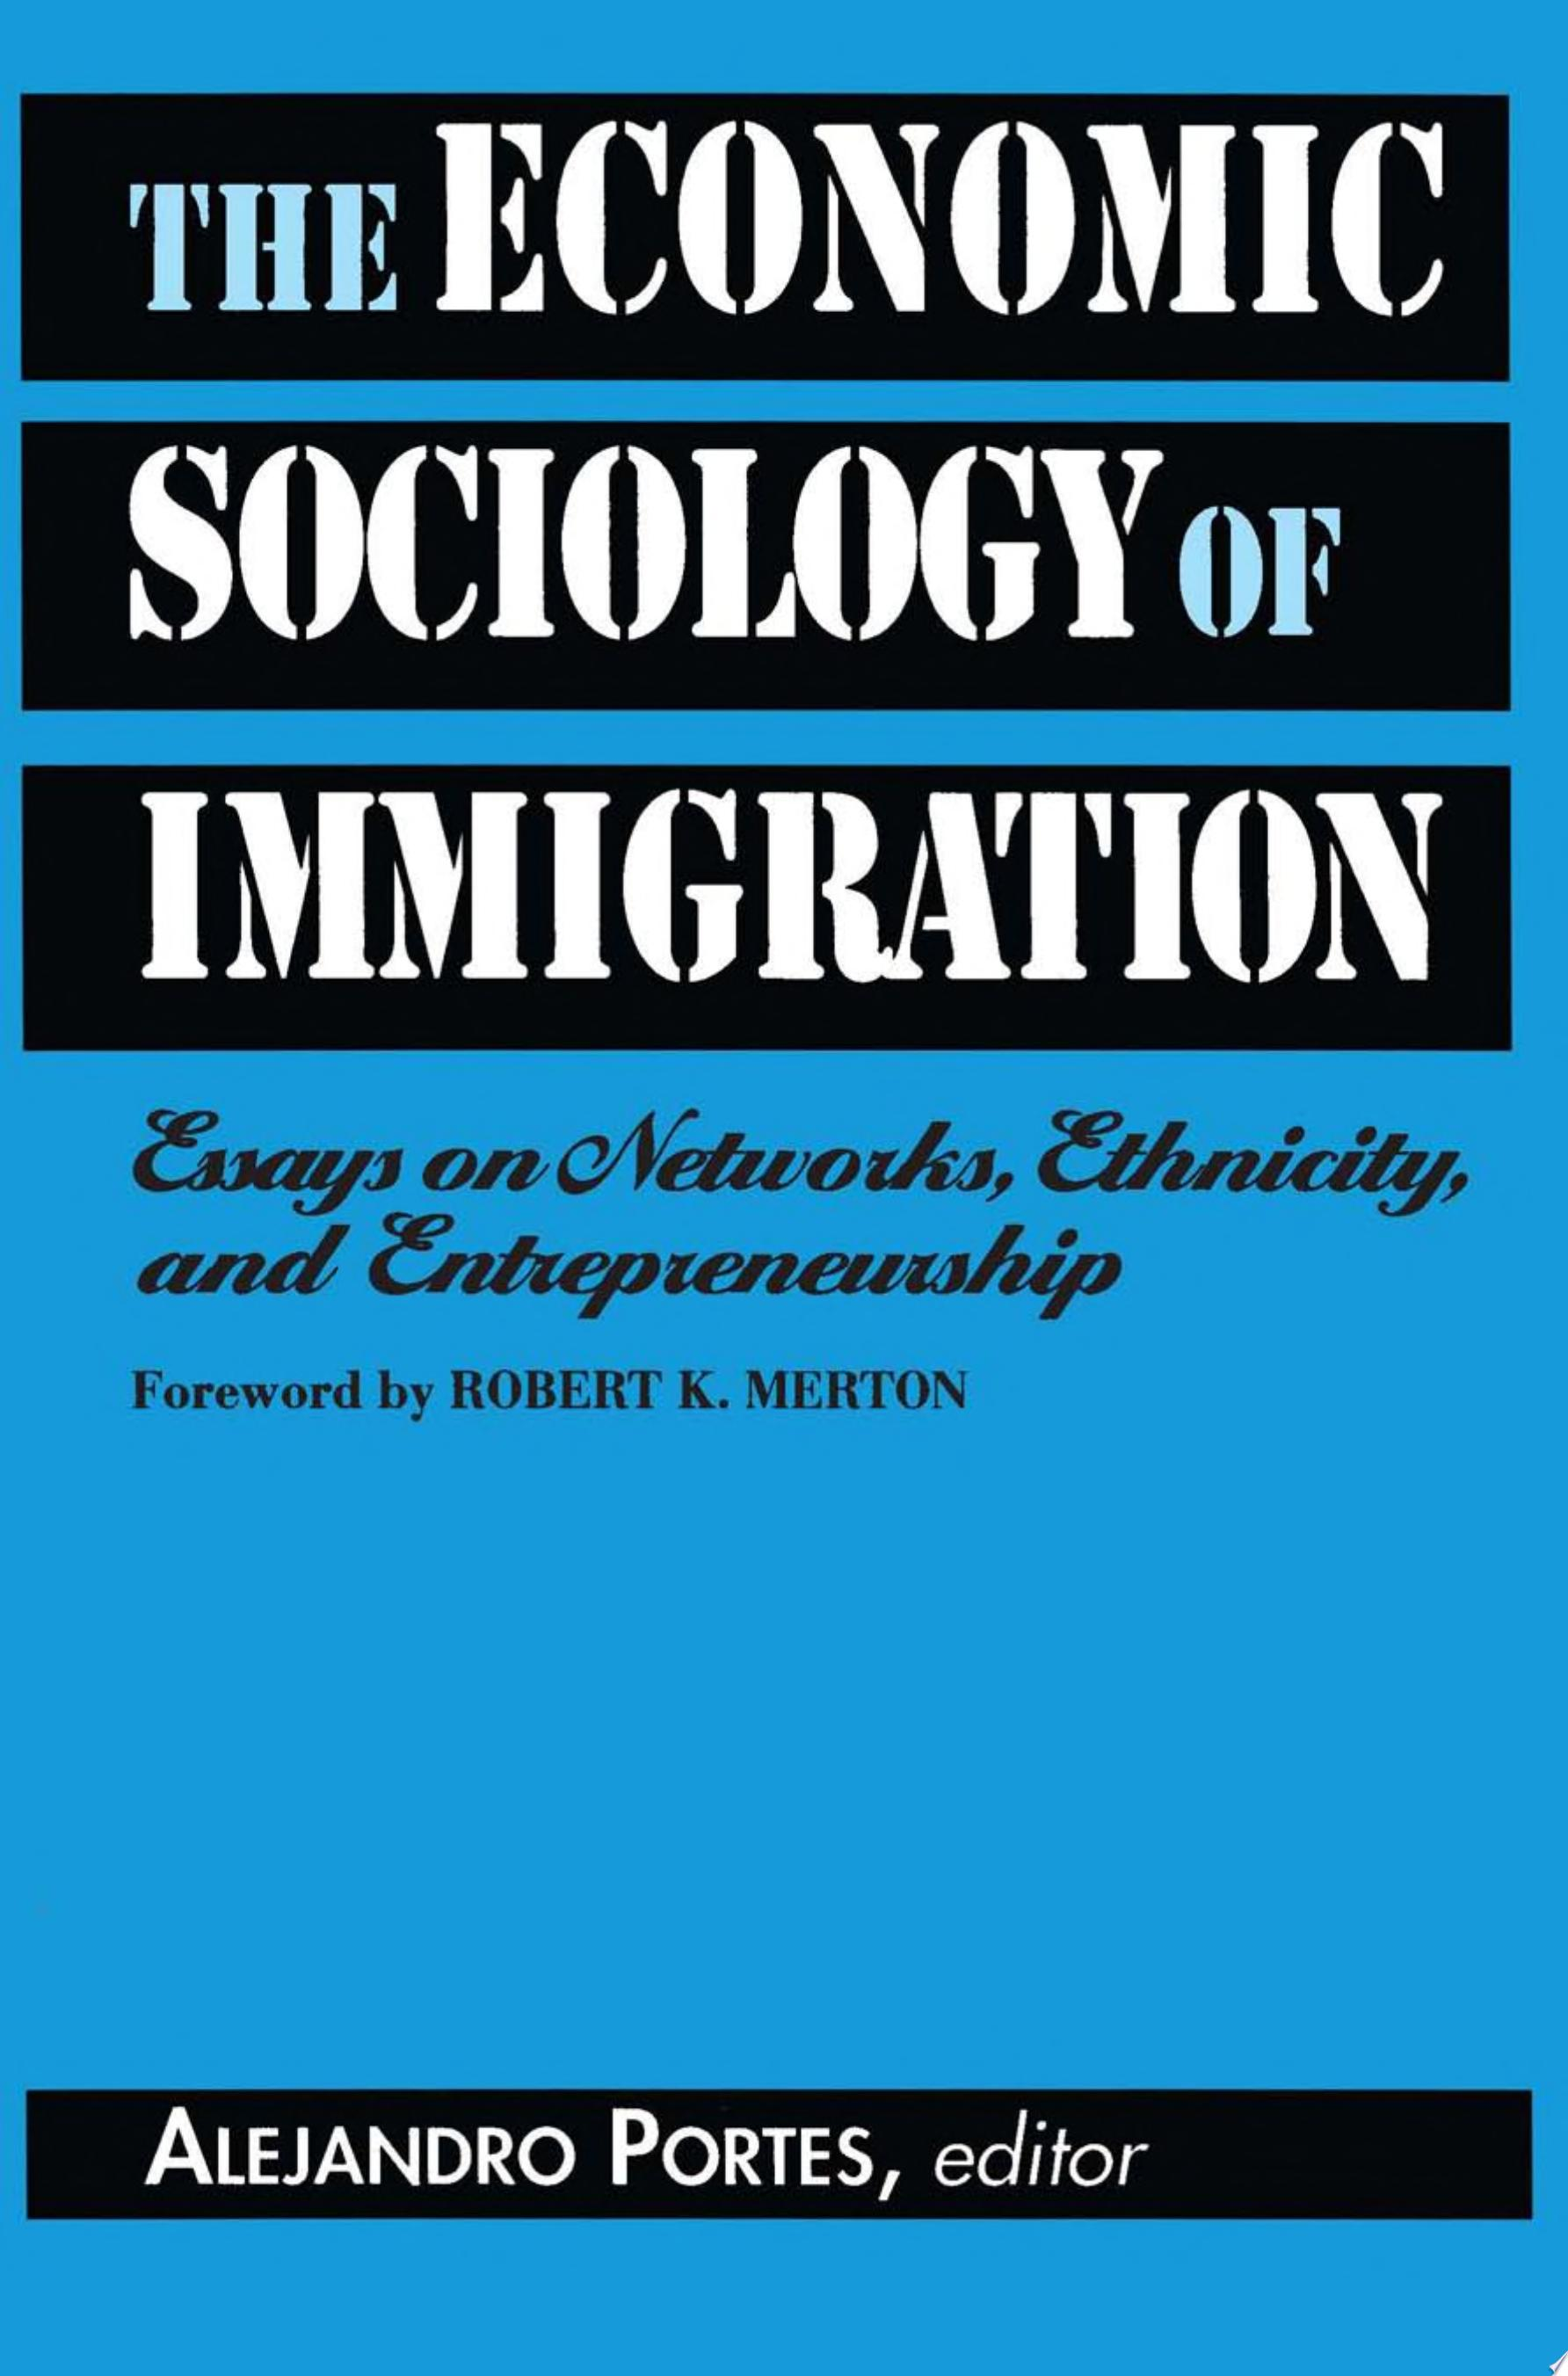 The Economic Sociology of Immigration